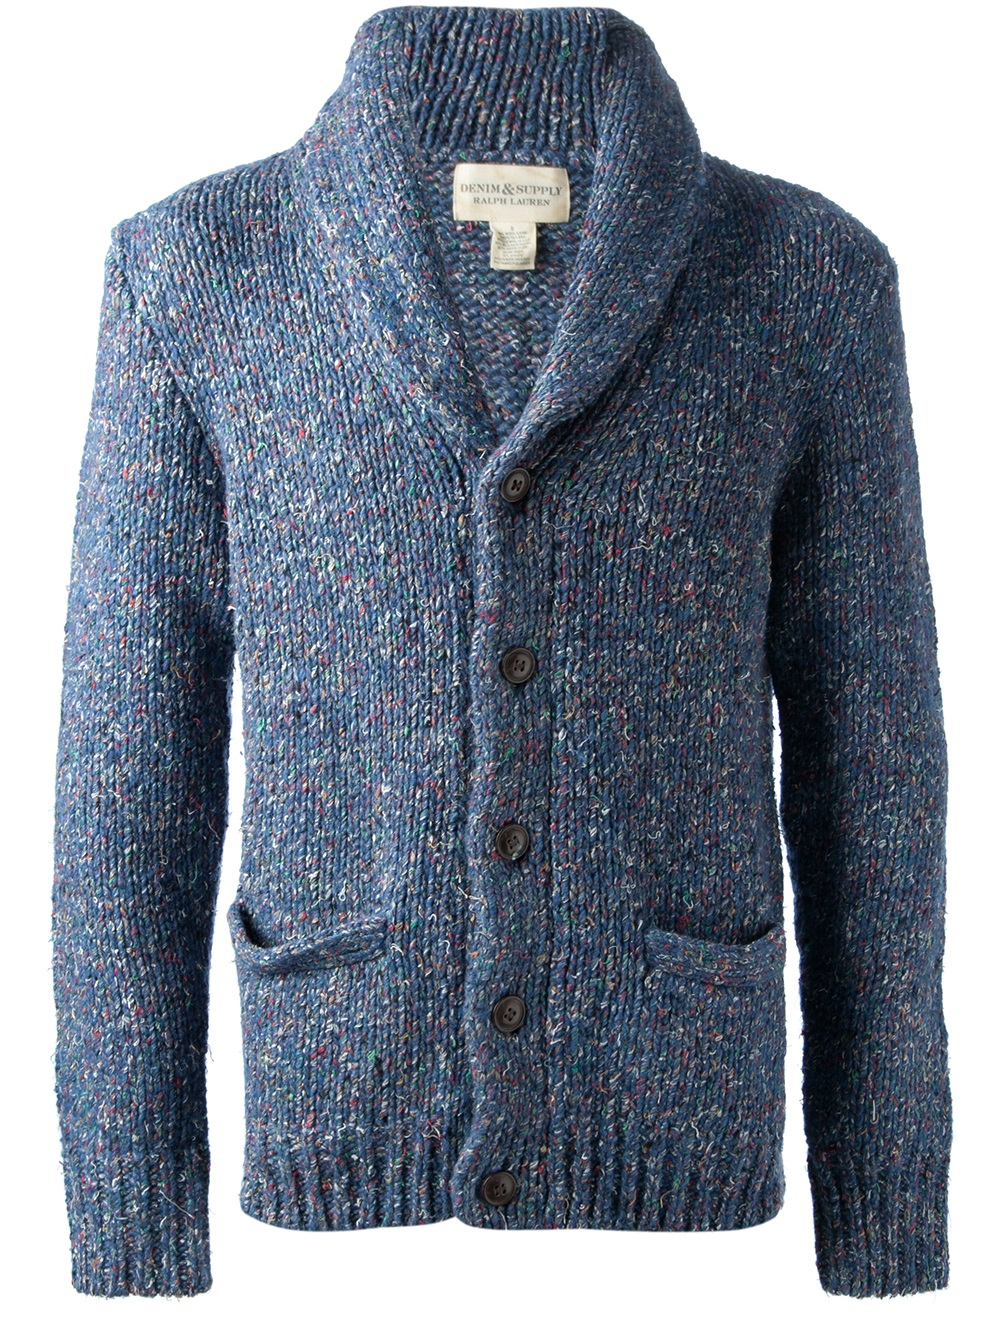 jelly555.ml Mens Lambs Wool Shawl Cardigan Gray Blue Buttons Size Medium EUC. Pre-Owned. $ or Best Offer +$ shipping. 20 Watching. jelly555.ml Mens Shawl Collar Guernsey Cotton Cardigan Knit Sweater Blue Size XL. Pre-Owned.